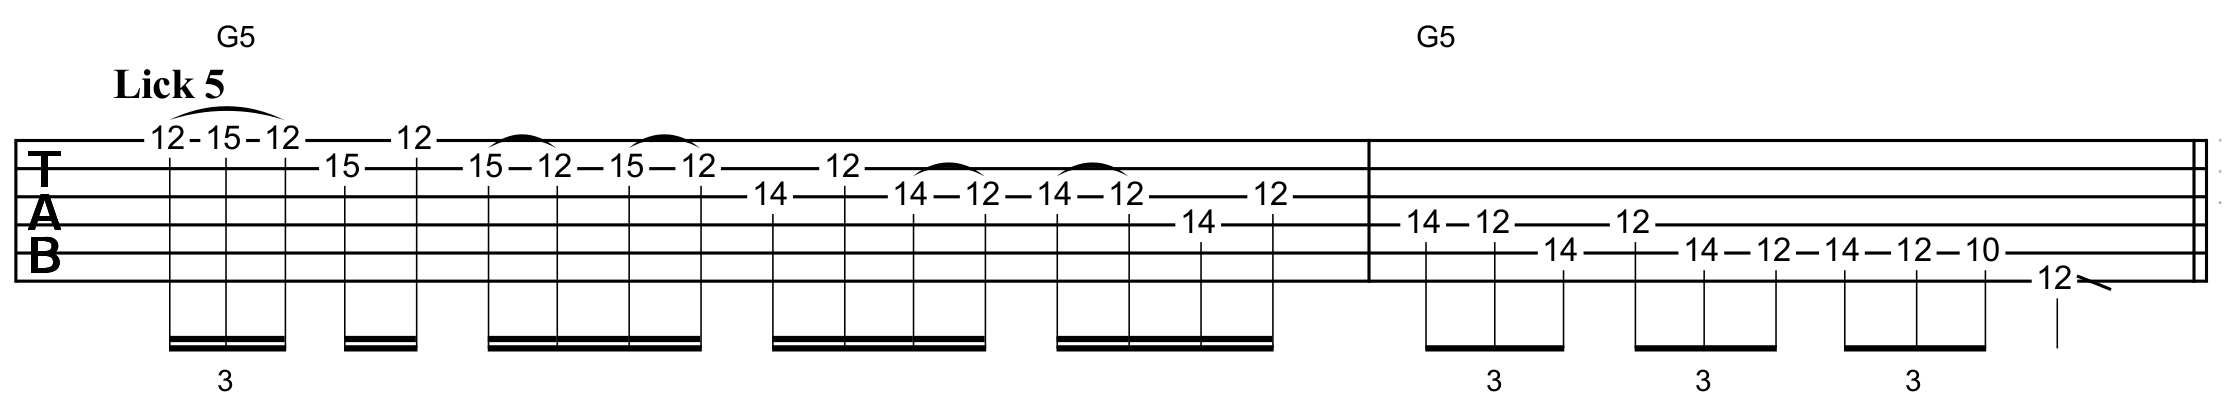 pentatonic lick using sequences of three and legato to descend the scale